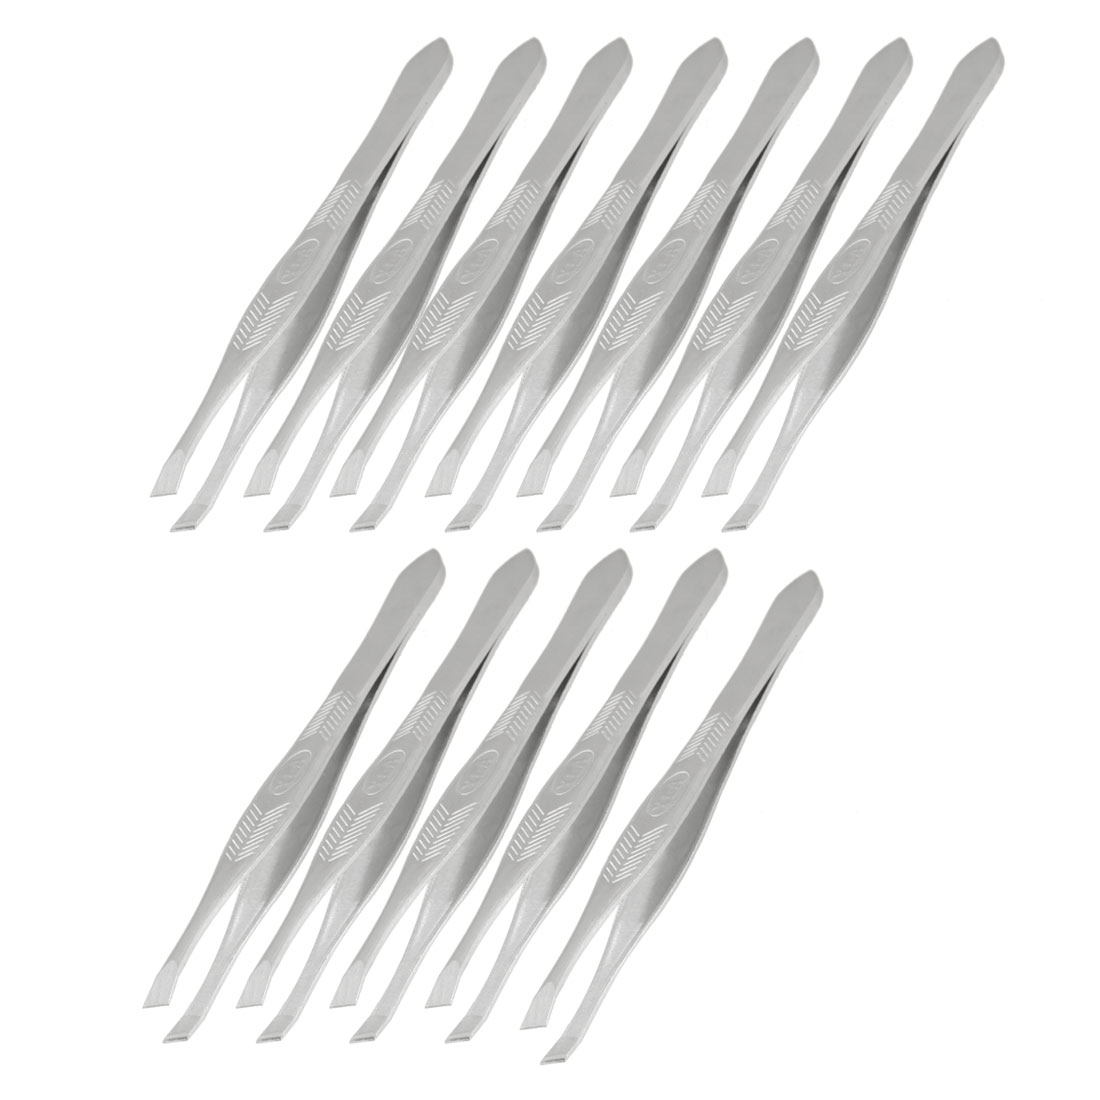 12 Pcs Cosmetic Tool Silver Tone Slanted Tip Hair Removal Eyebrow Tweezer